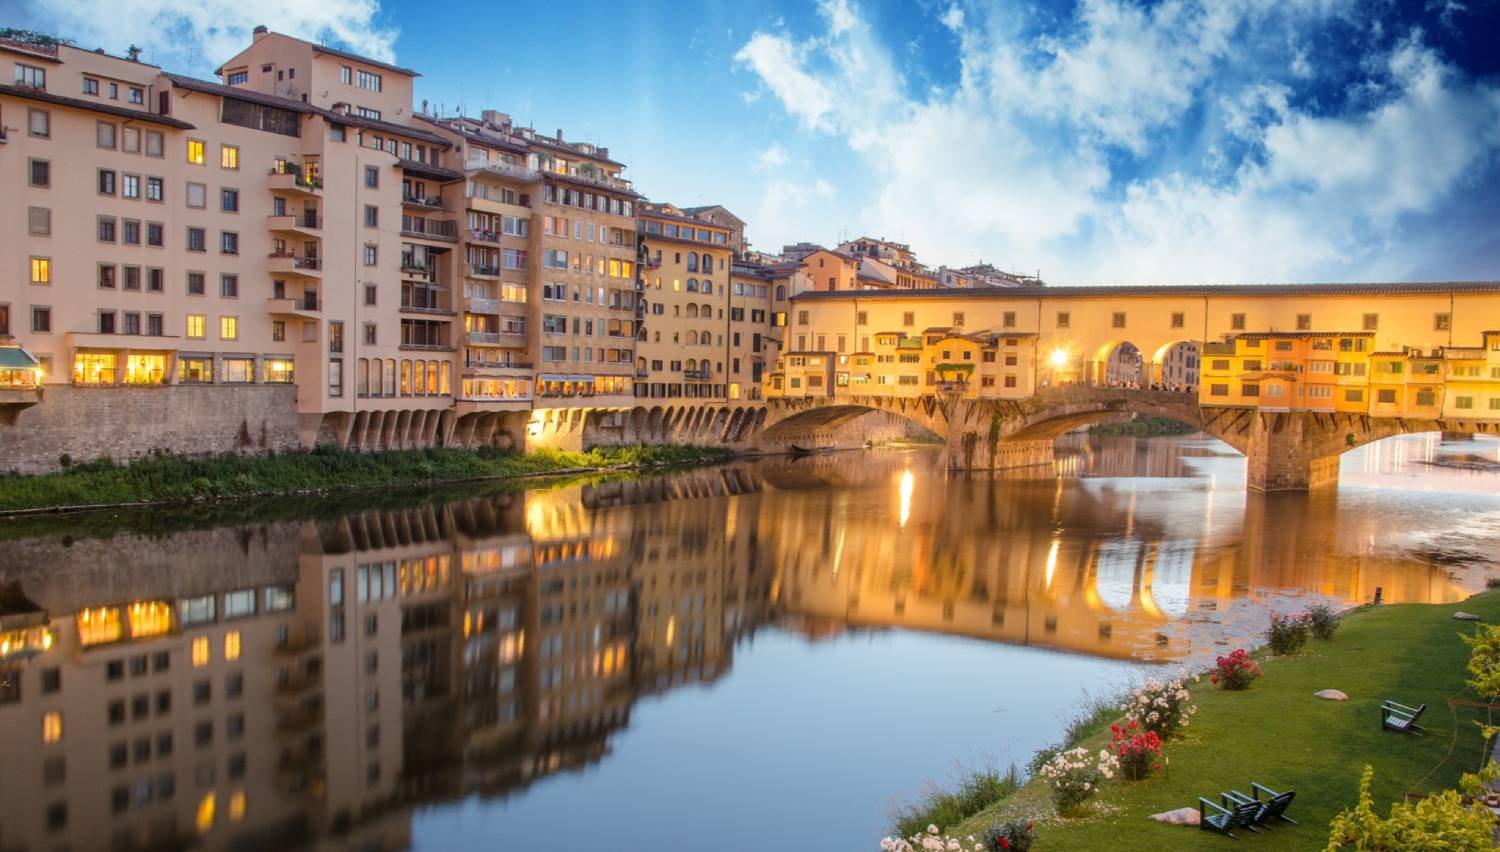 River Arno - Things To Do In Florence